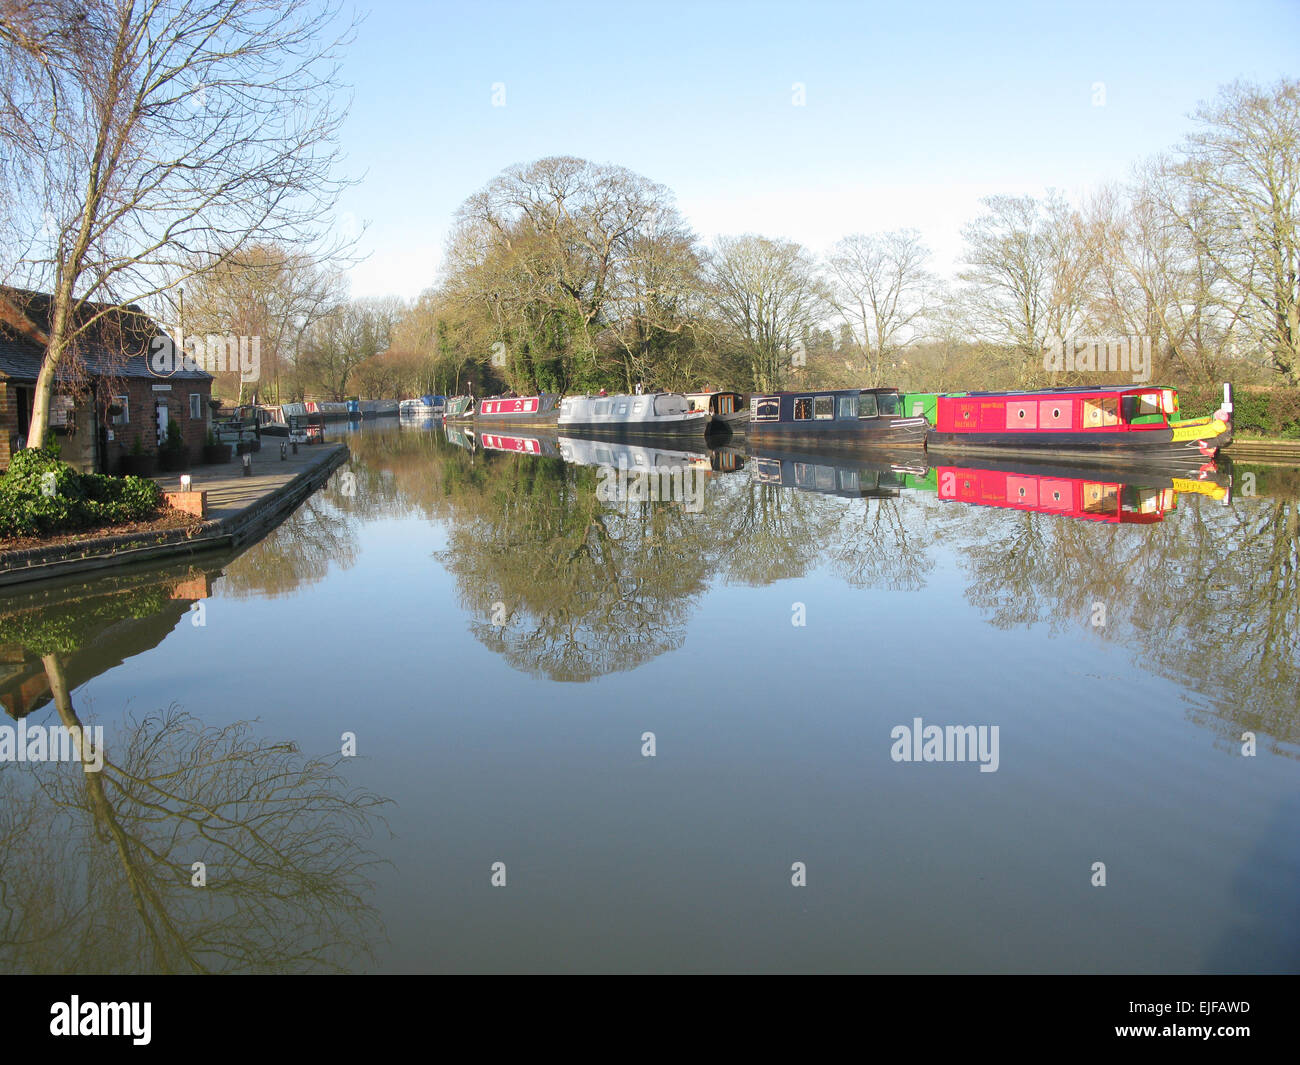 Oxford Canal with Narrow Boats - Stock Image